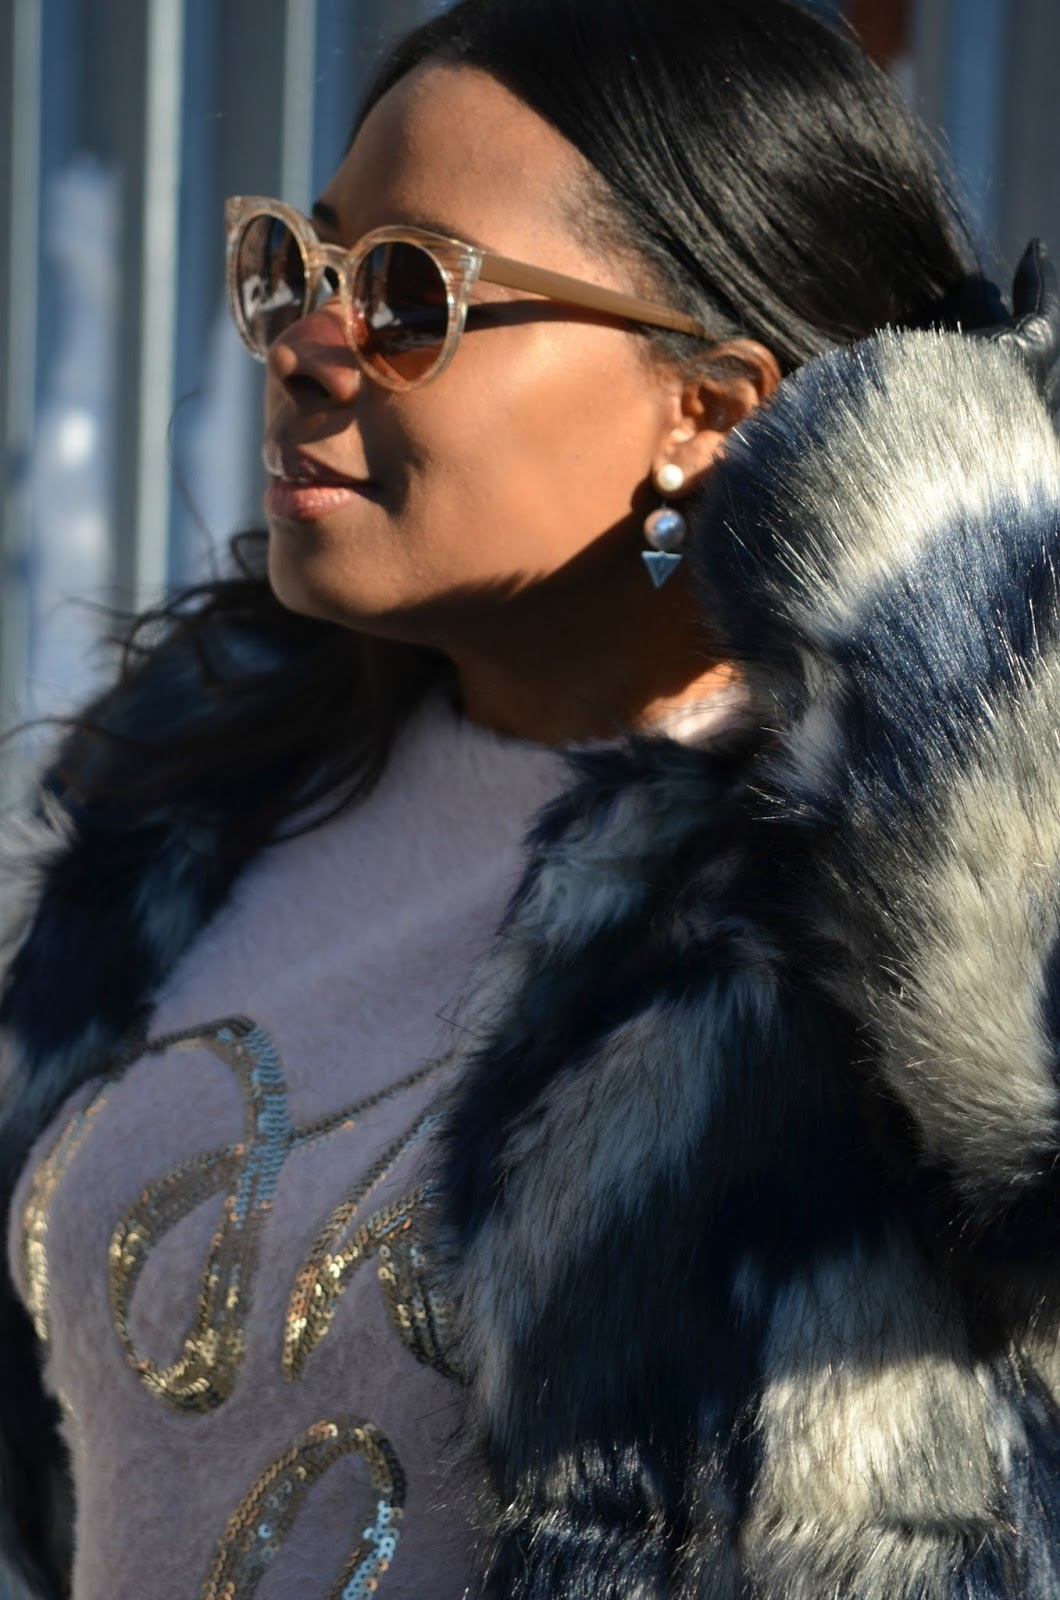 Illesteva-Cat-eye-Sunglasses+Zigzag Fur Coat